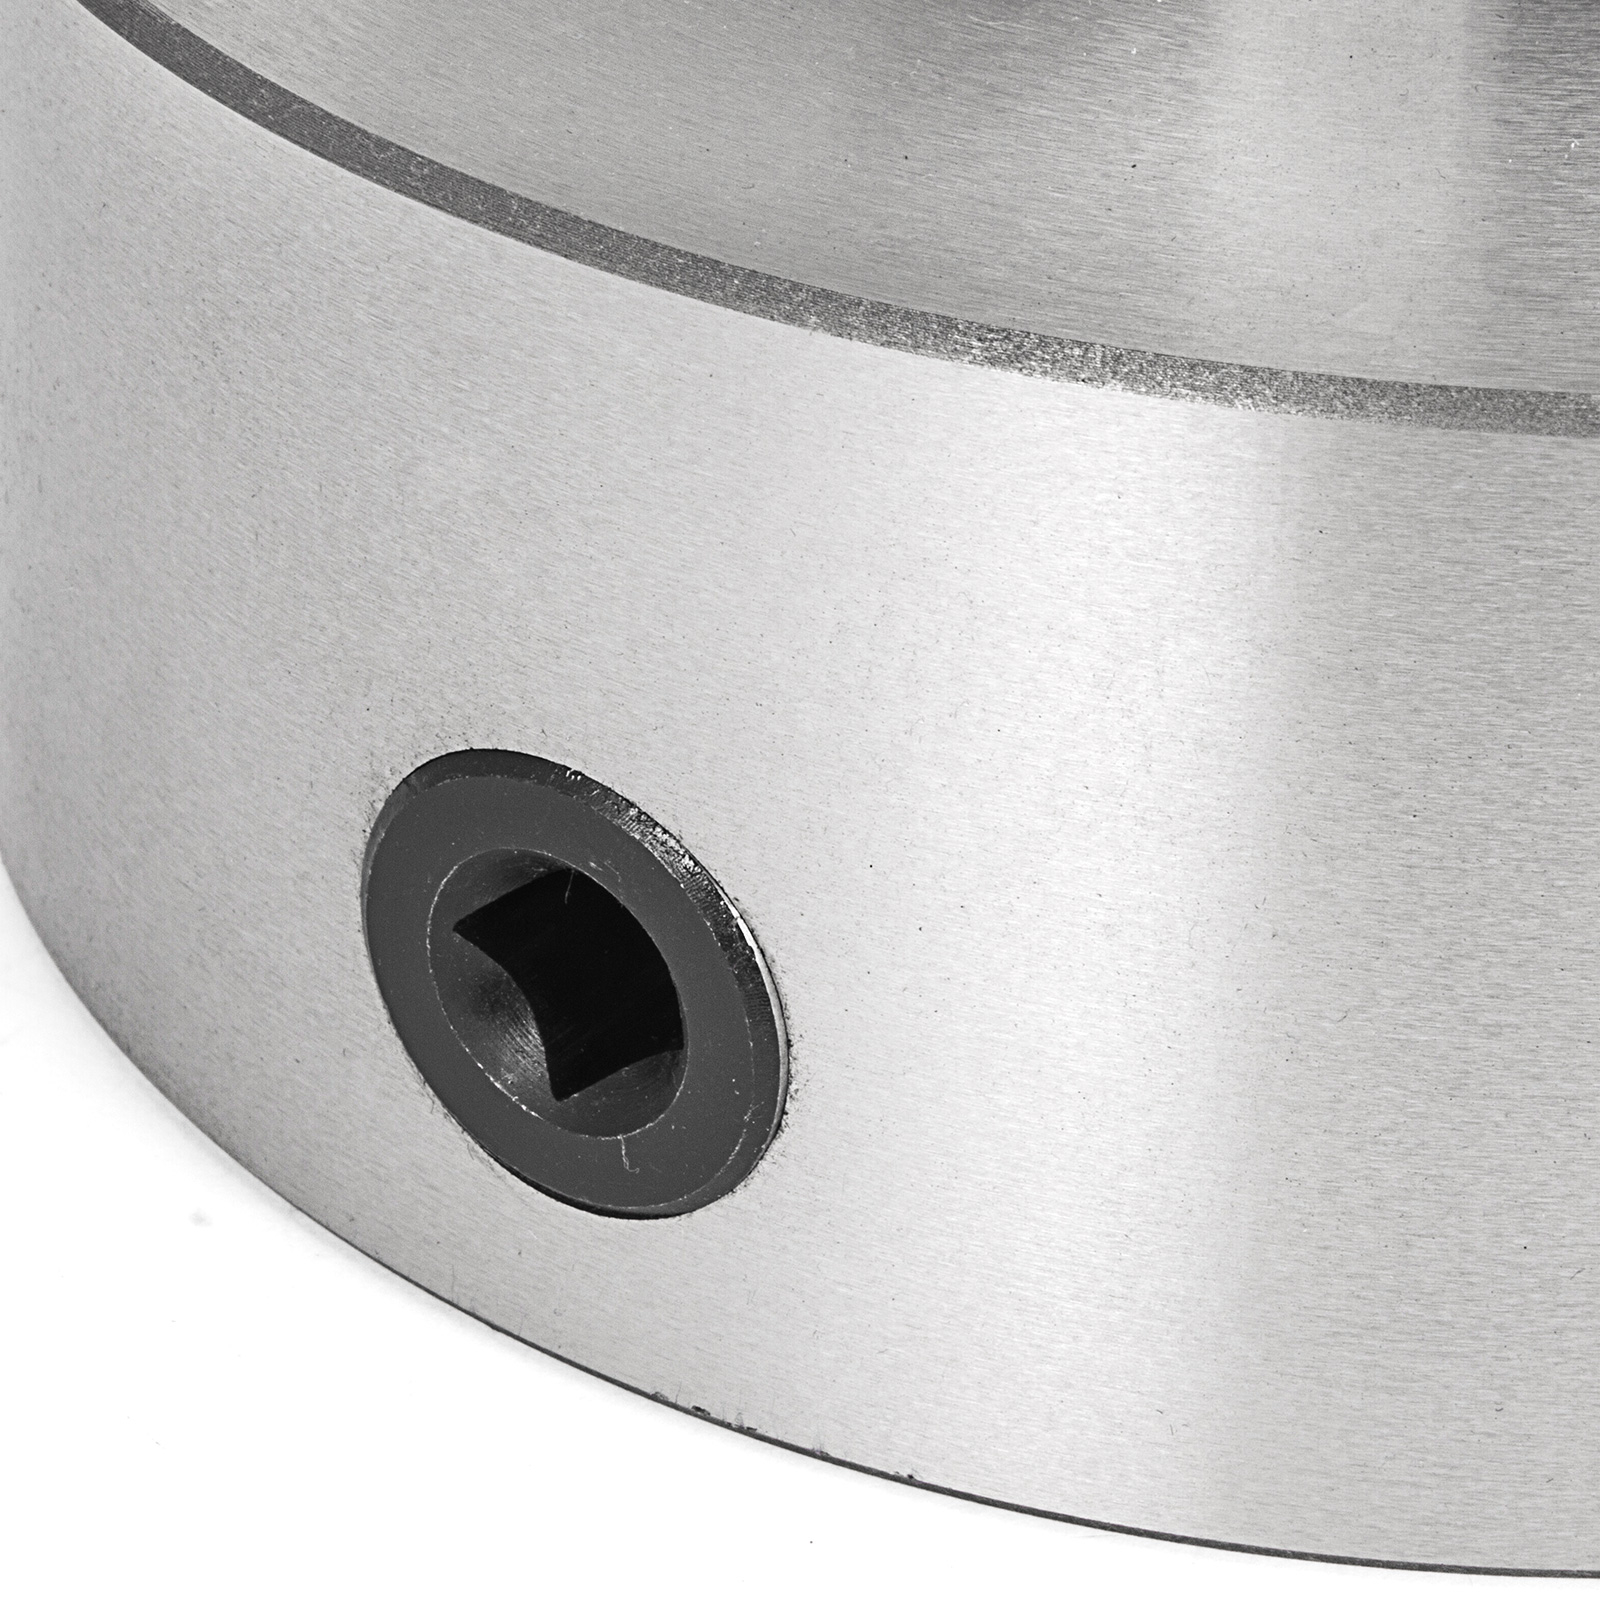 160-400mm-3-Jaw-Metal-Lathe-Chuck-Reversible-Independent-Key-Handle thumbnail 31